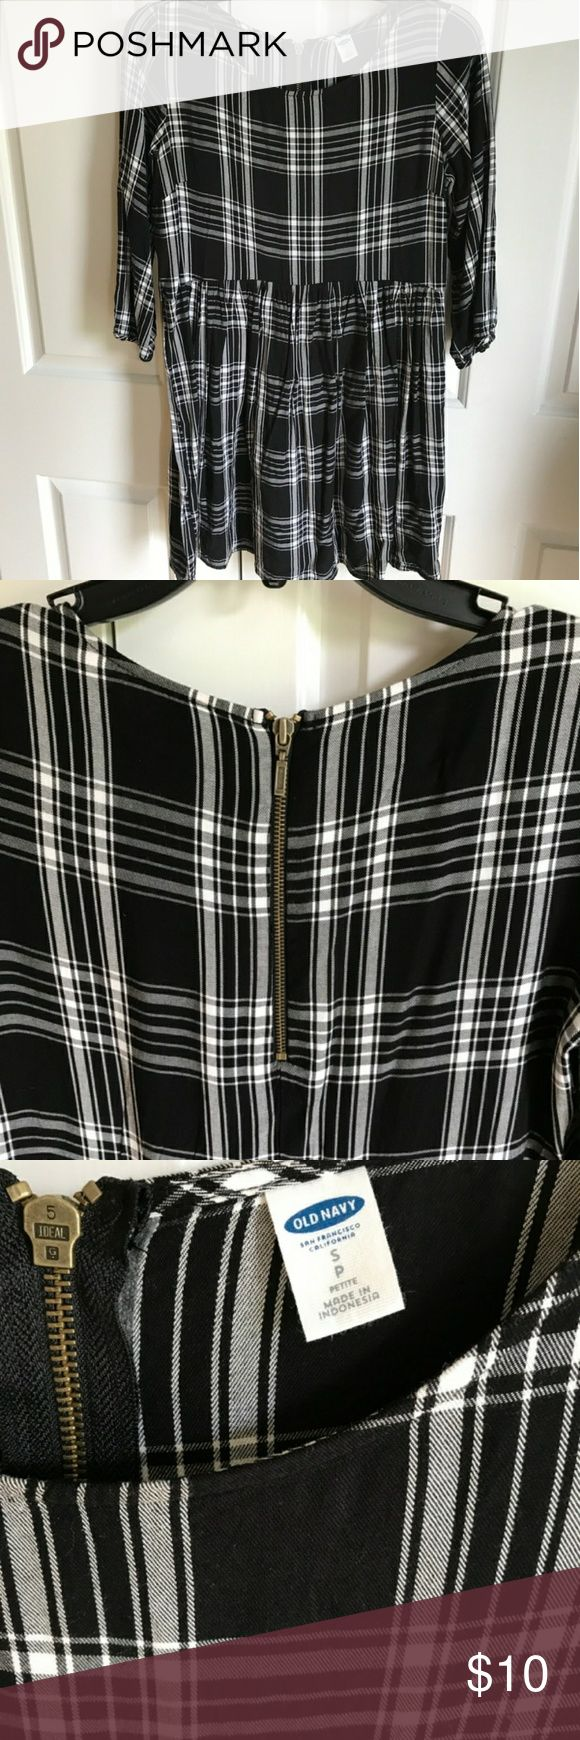 Old Navy Plaid Petite Dress Old Navy Plaid black and white shirt dress. Super cute with zipper in the back. Quarter sleeve. Size small petite. Really cute with leggings. Worn only once. In excellent condition! Old Navy Dresses